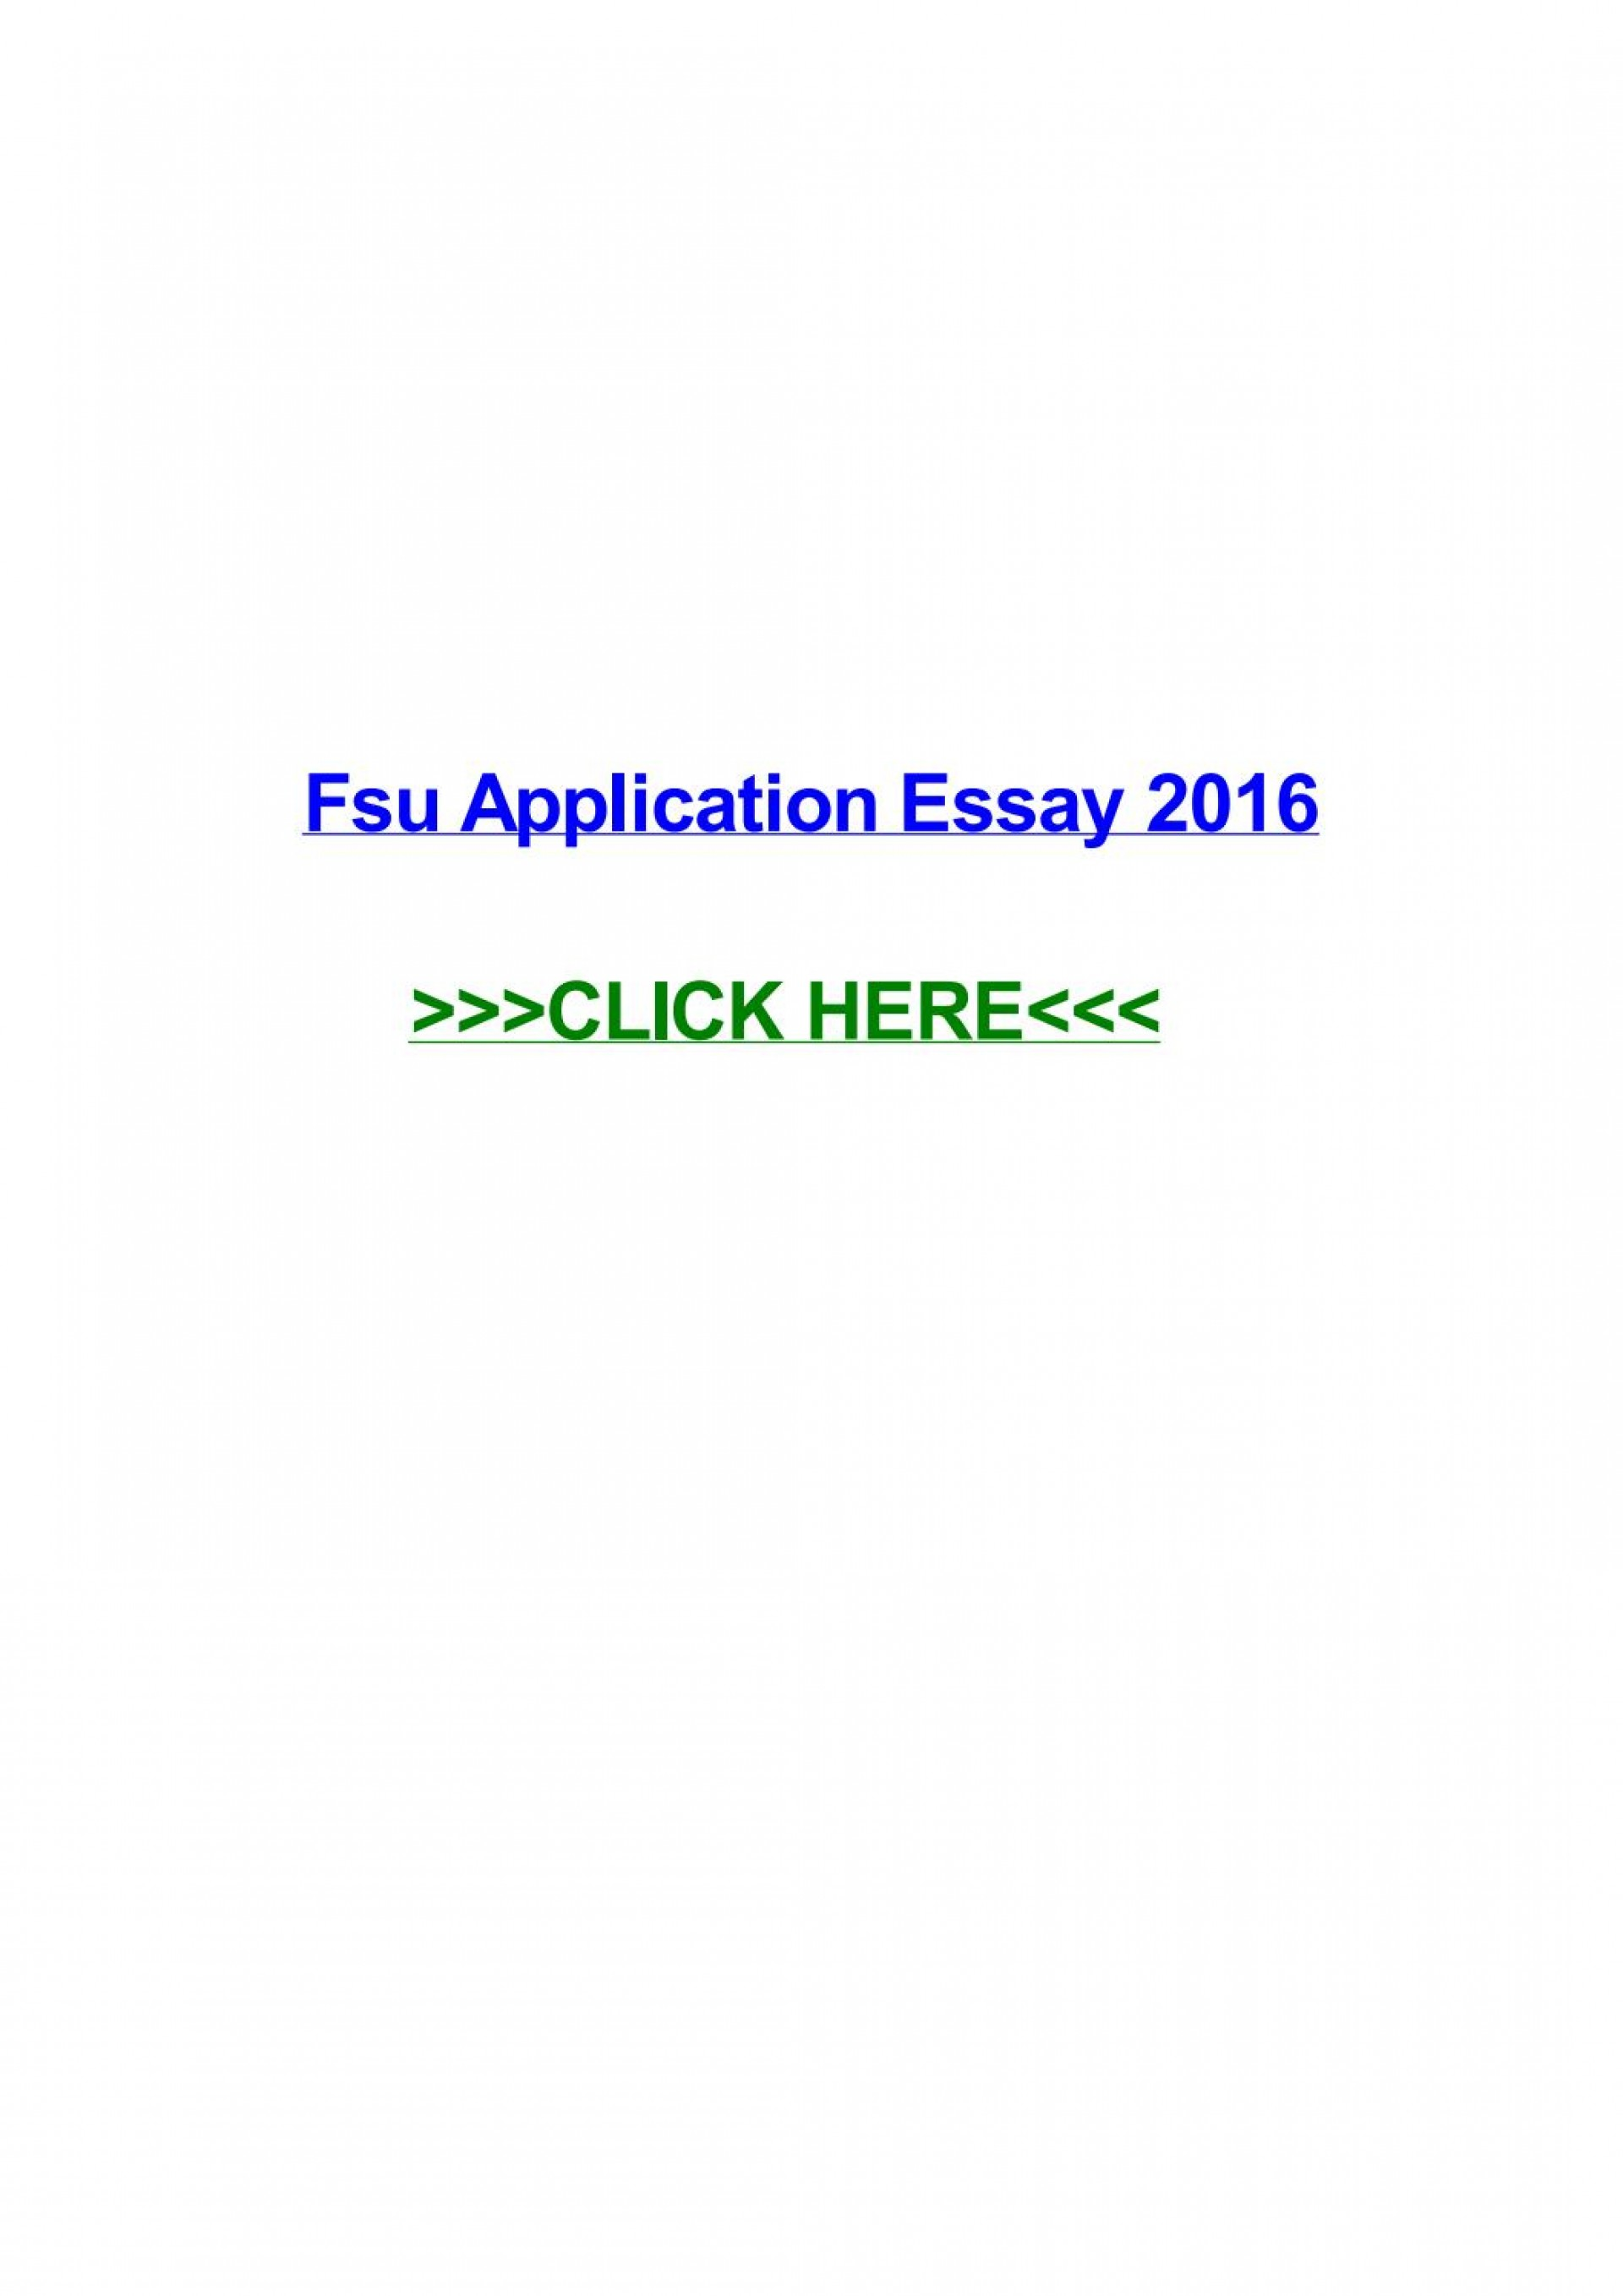 026 Essay Example Fsu Application Page 1 Remarkable Sample 1920